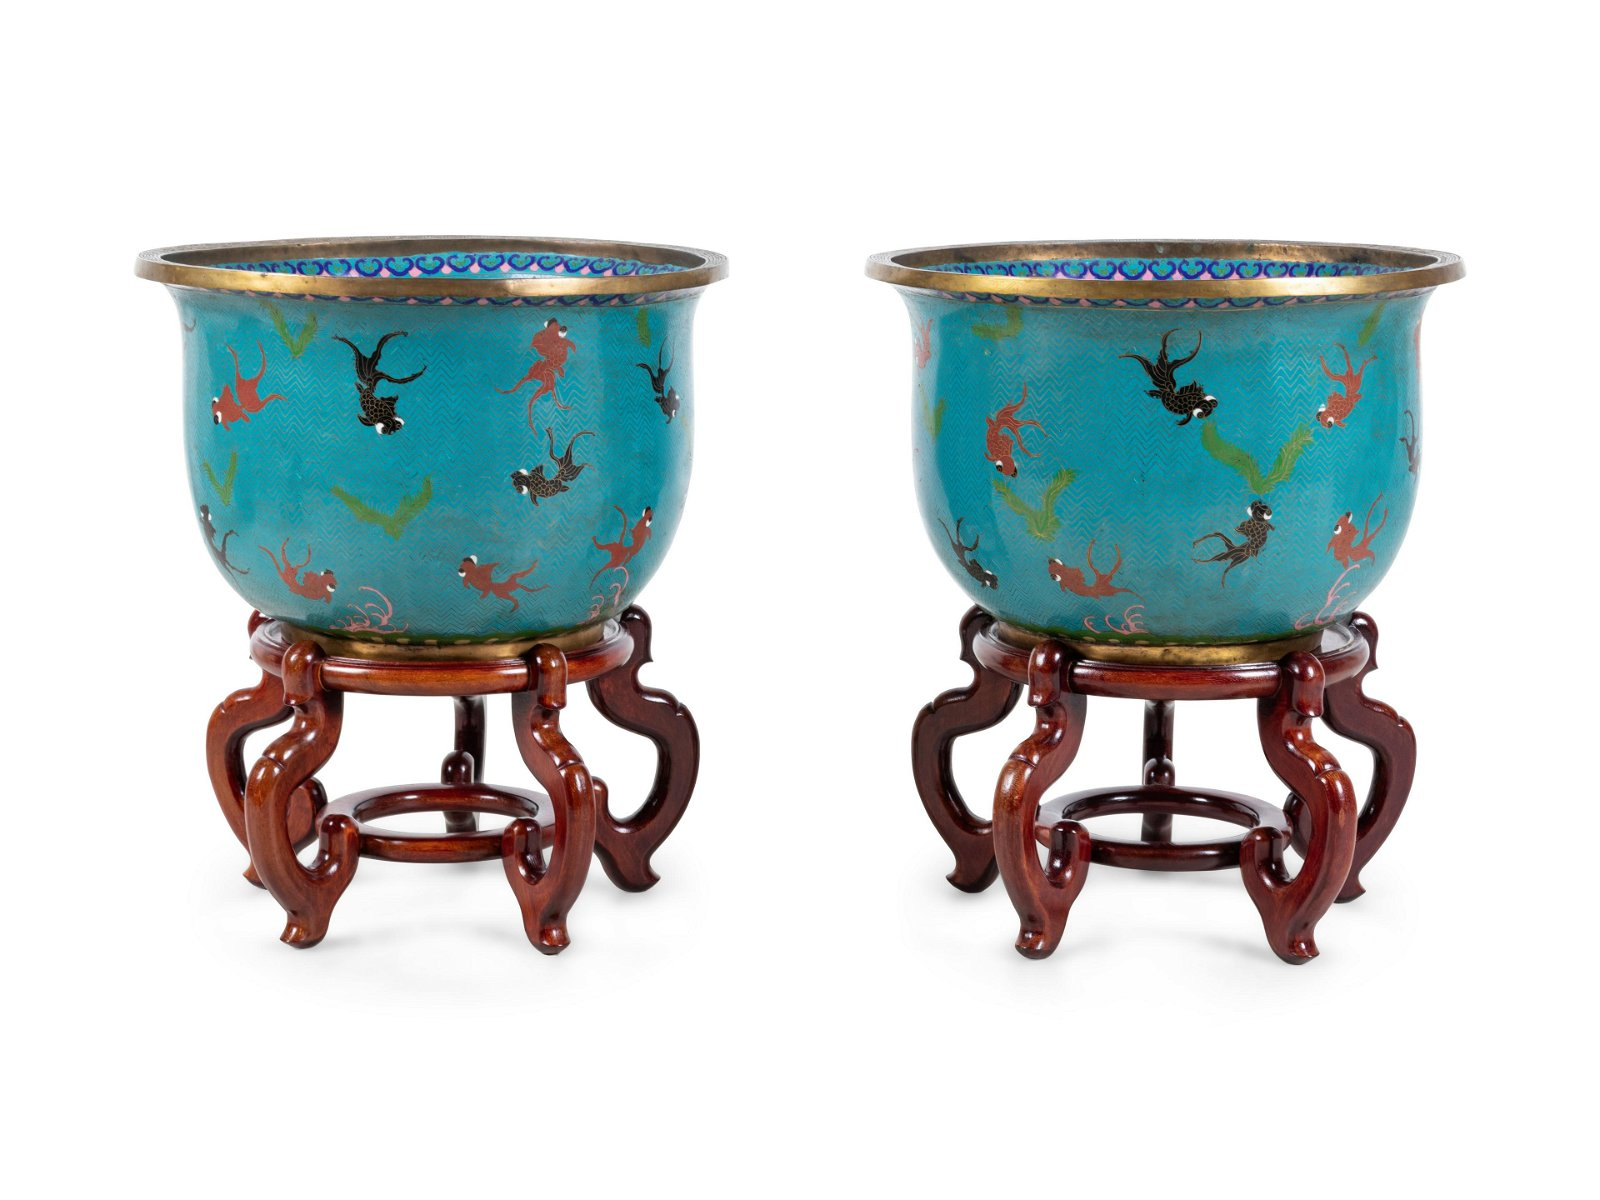 A Pair of Chinese Cloisonne Fish Bowls and Stands